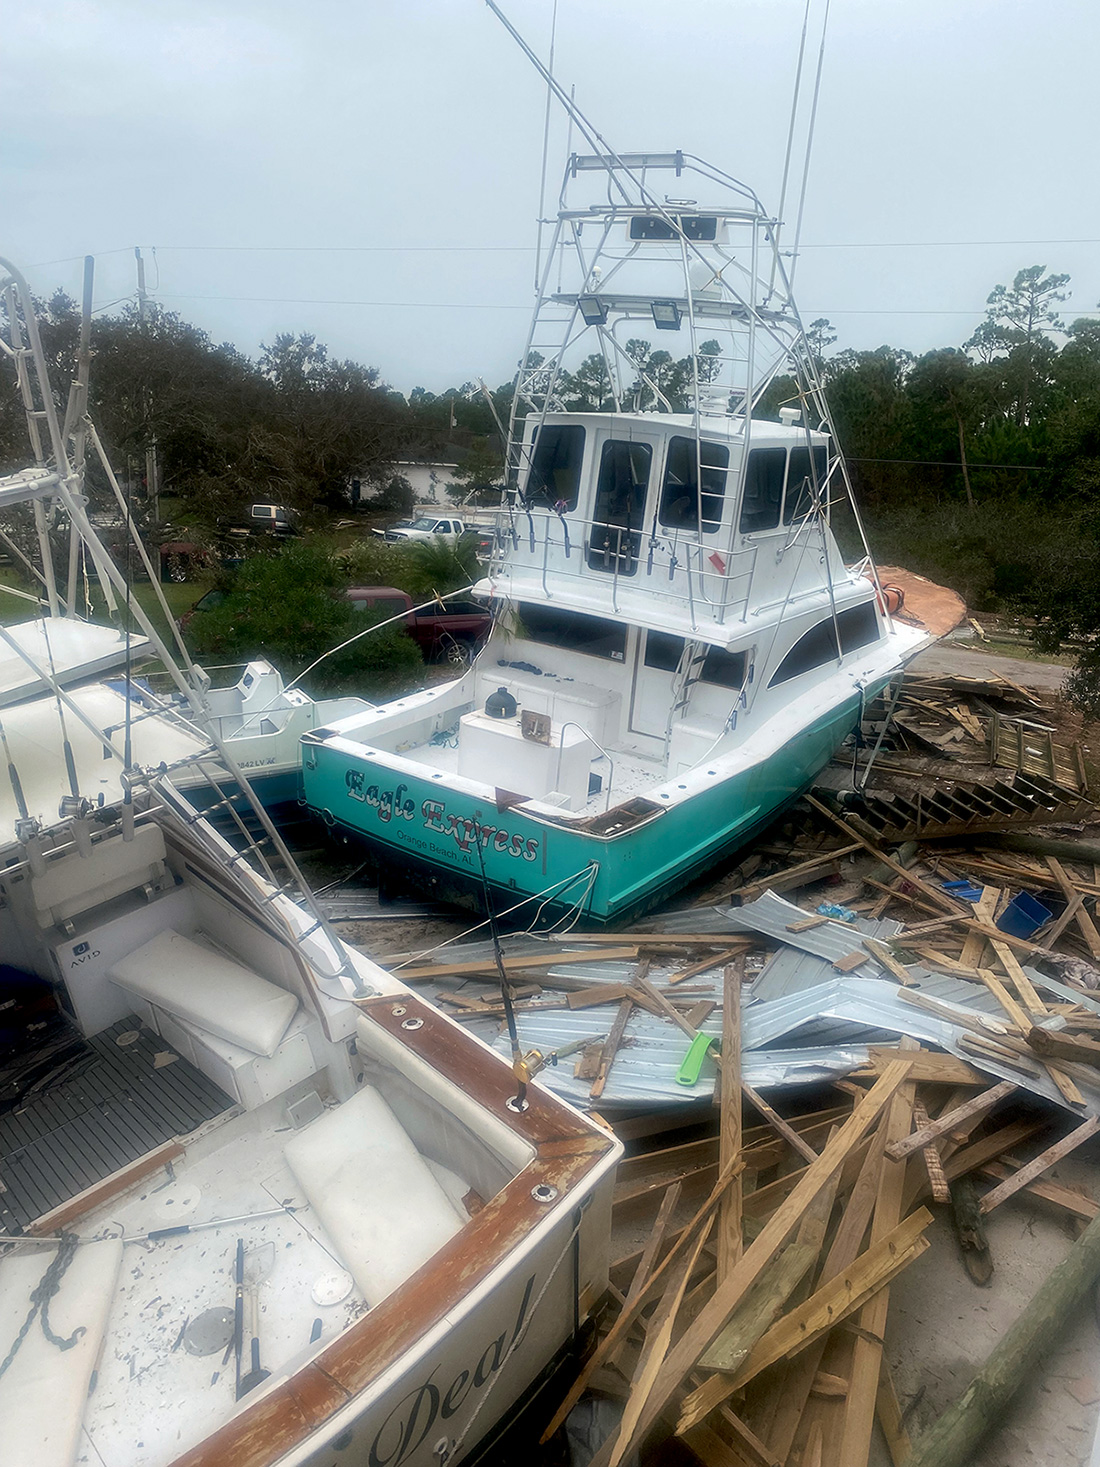 Wrecked boats from Hurricane Sally